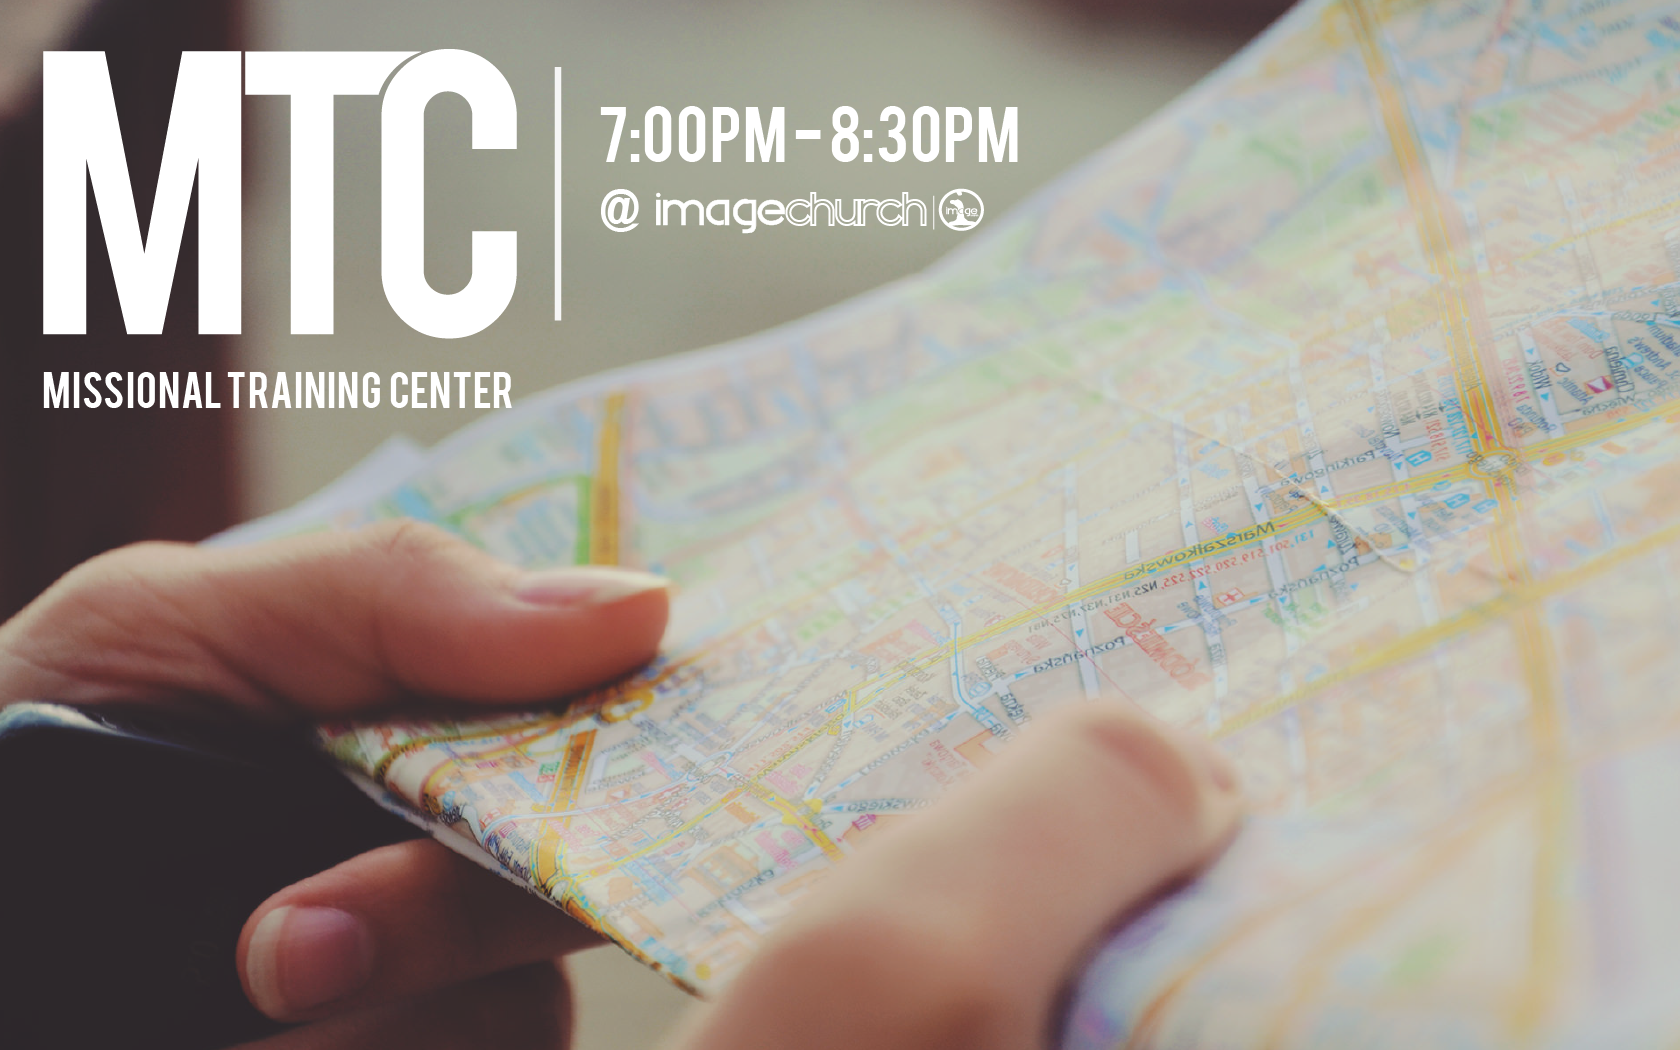 Join us for our monthly training center, intentionally designed to help train and equip you to make disciples who make disciples. All our welcome! Dinner and childcare are provided.